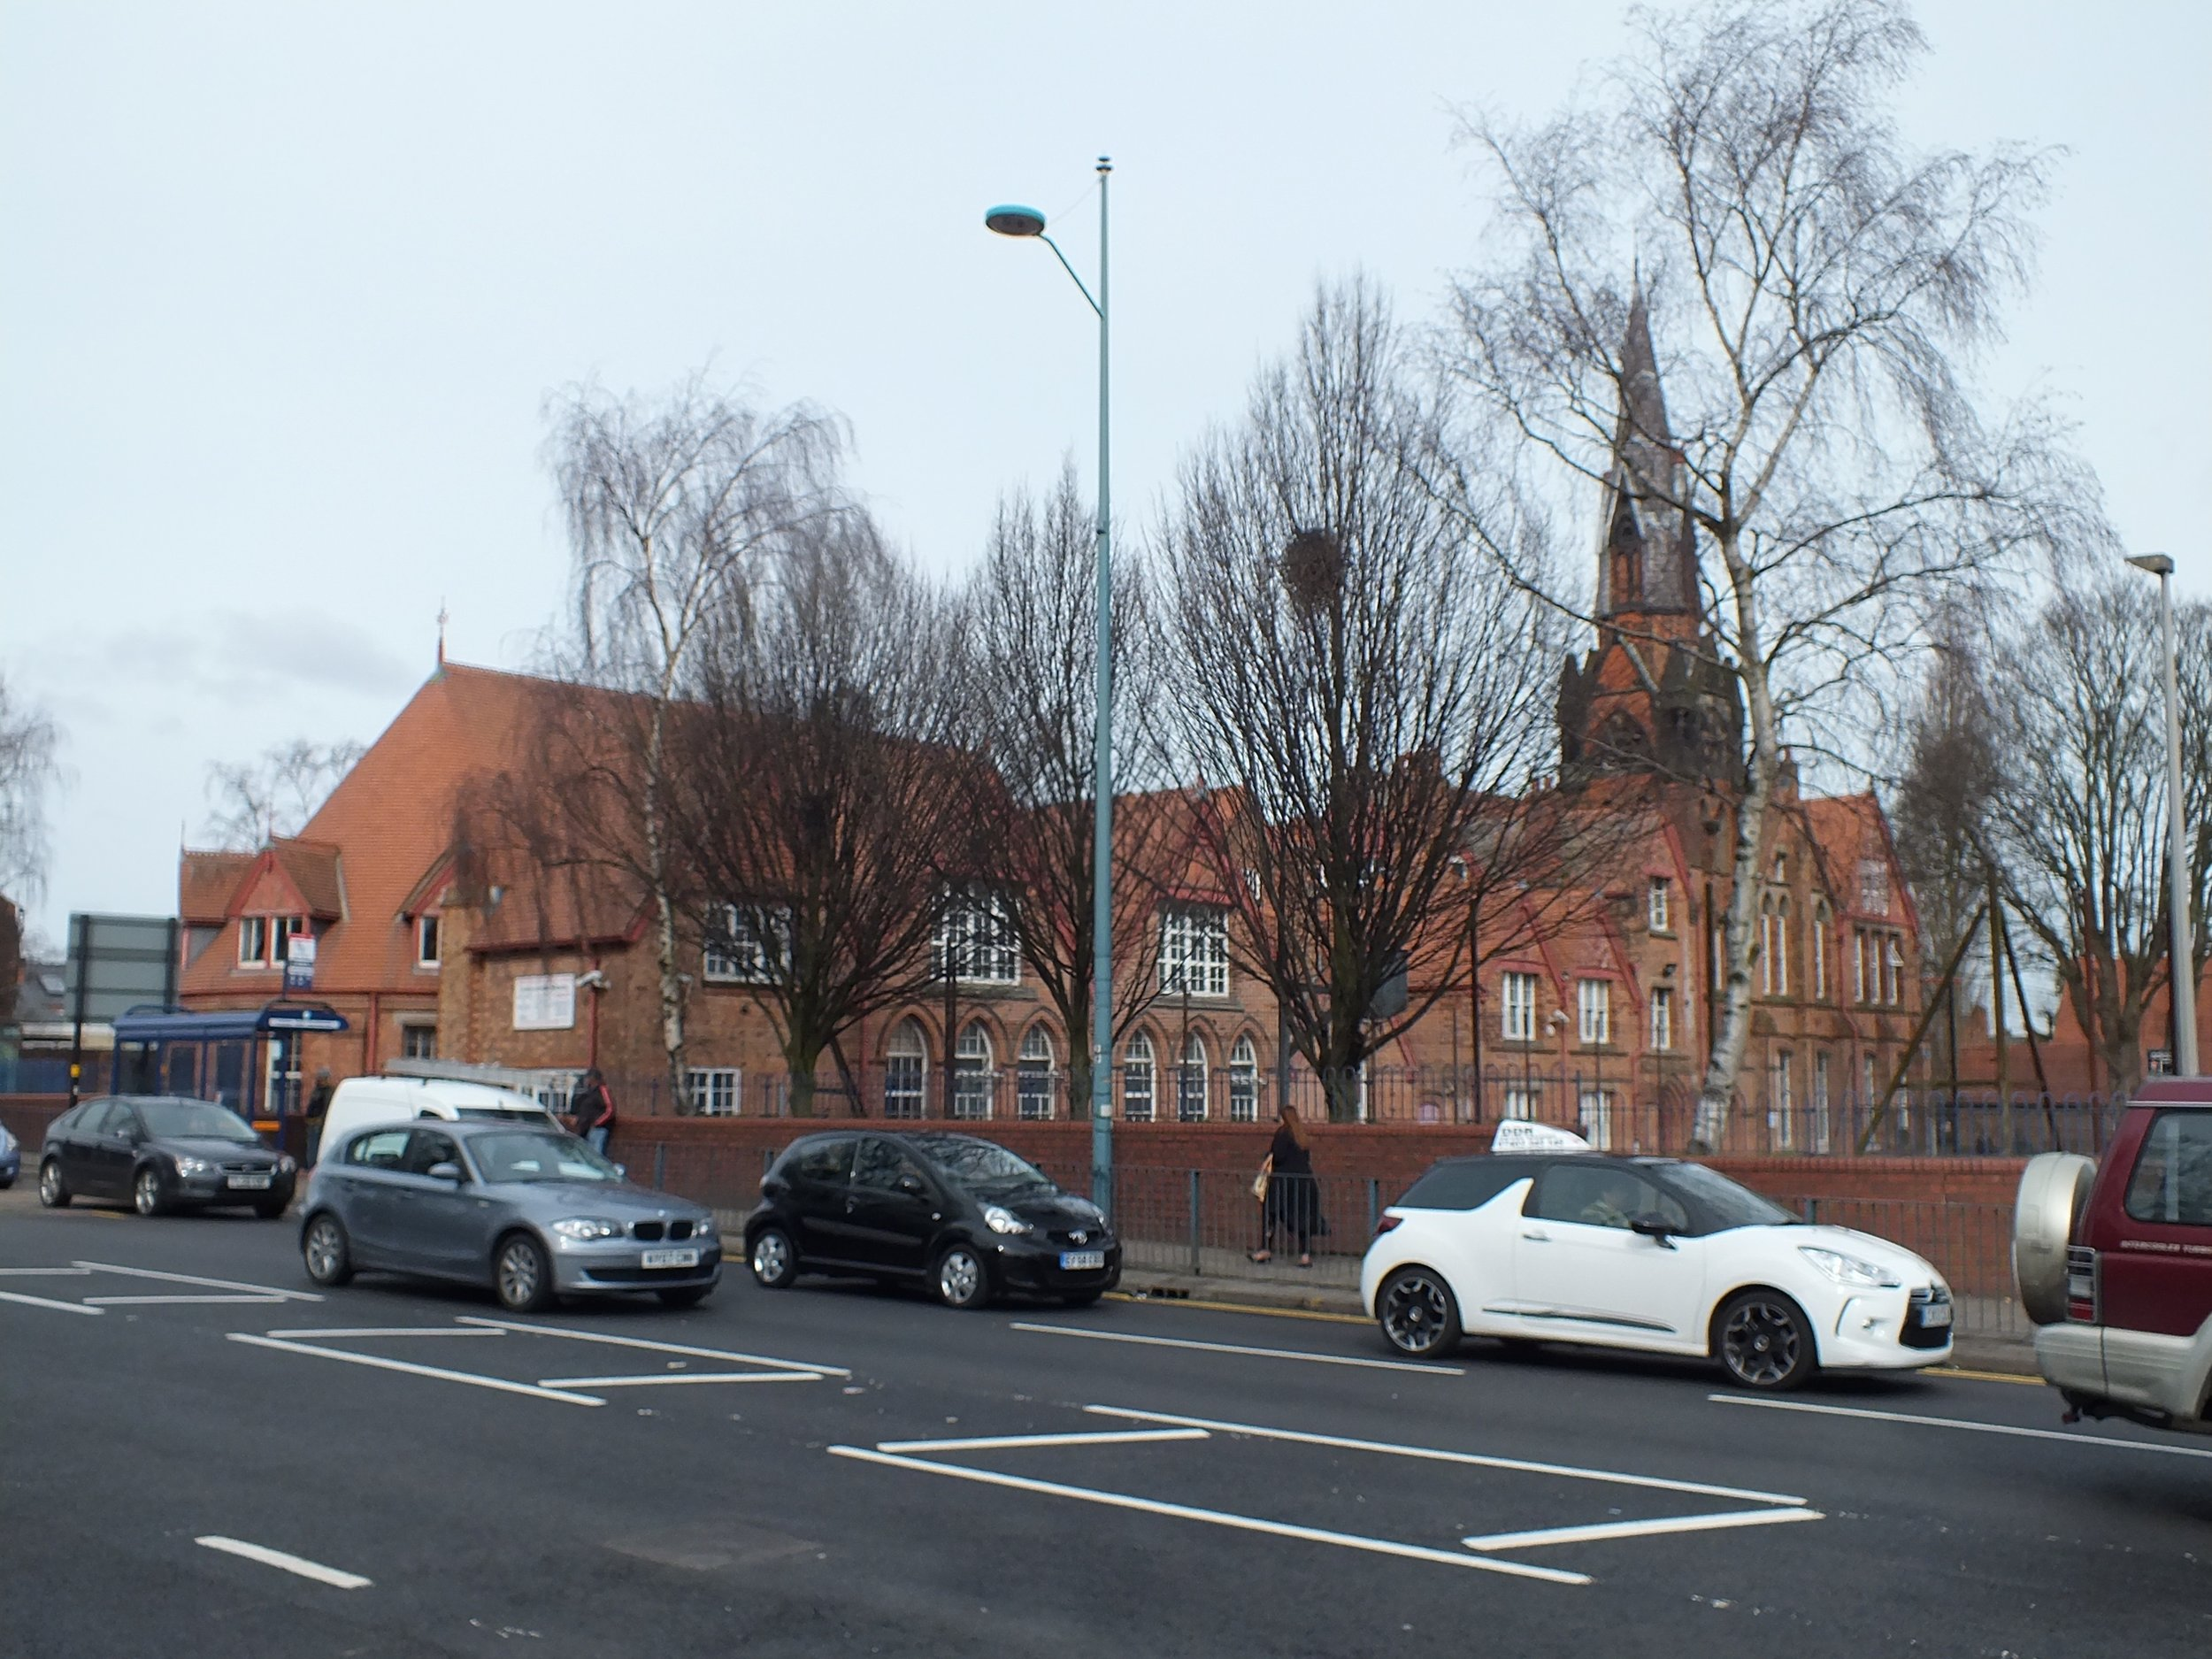 Dudley Road School from Dudley Road